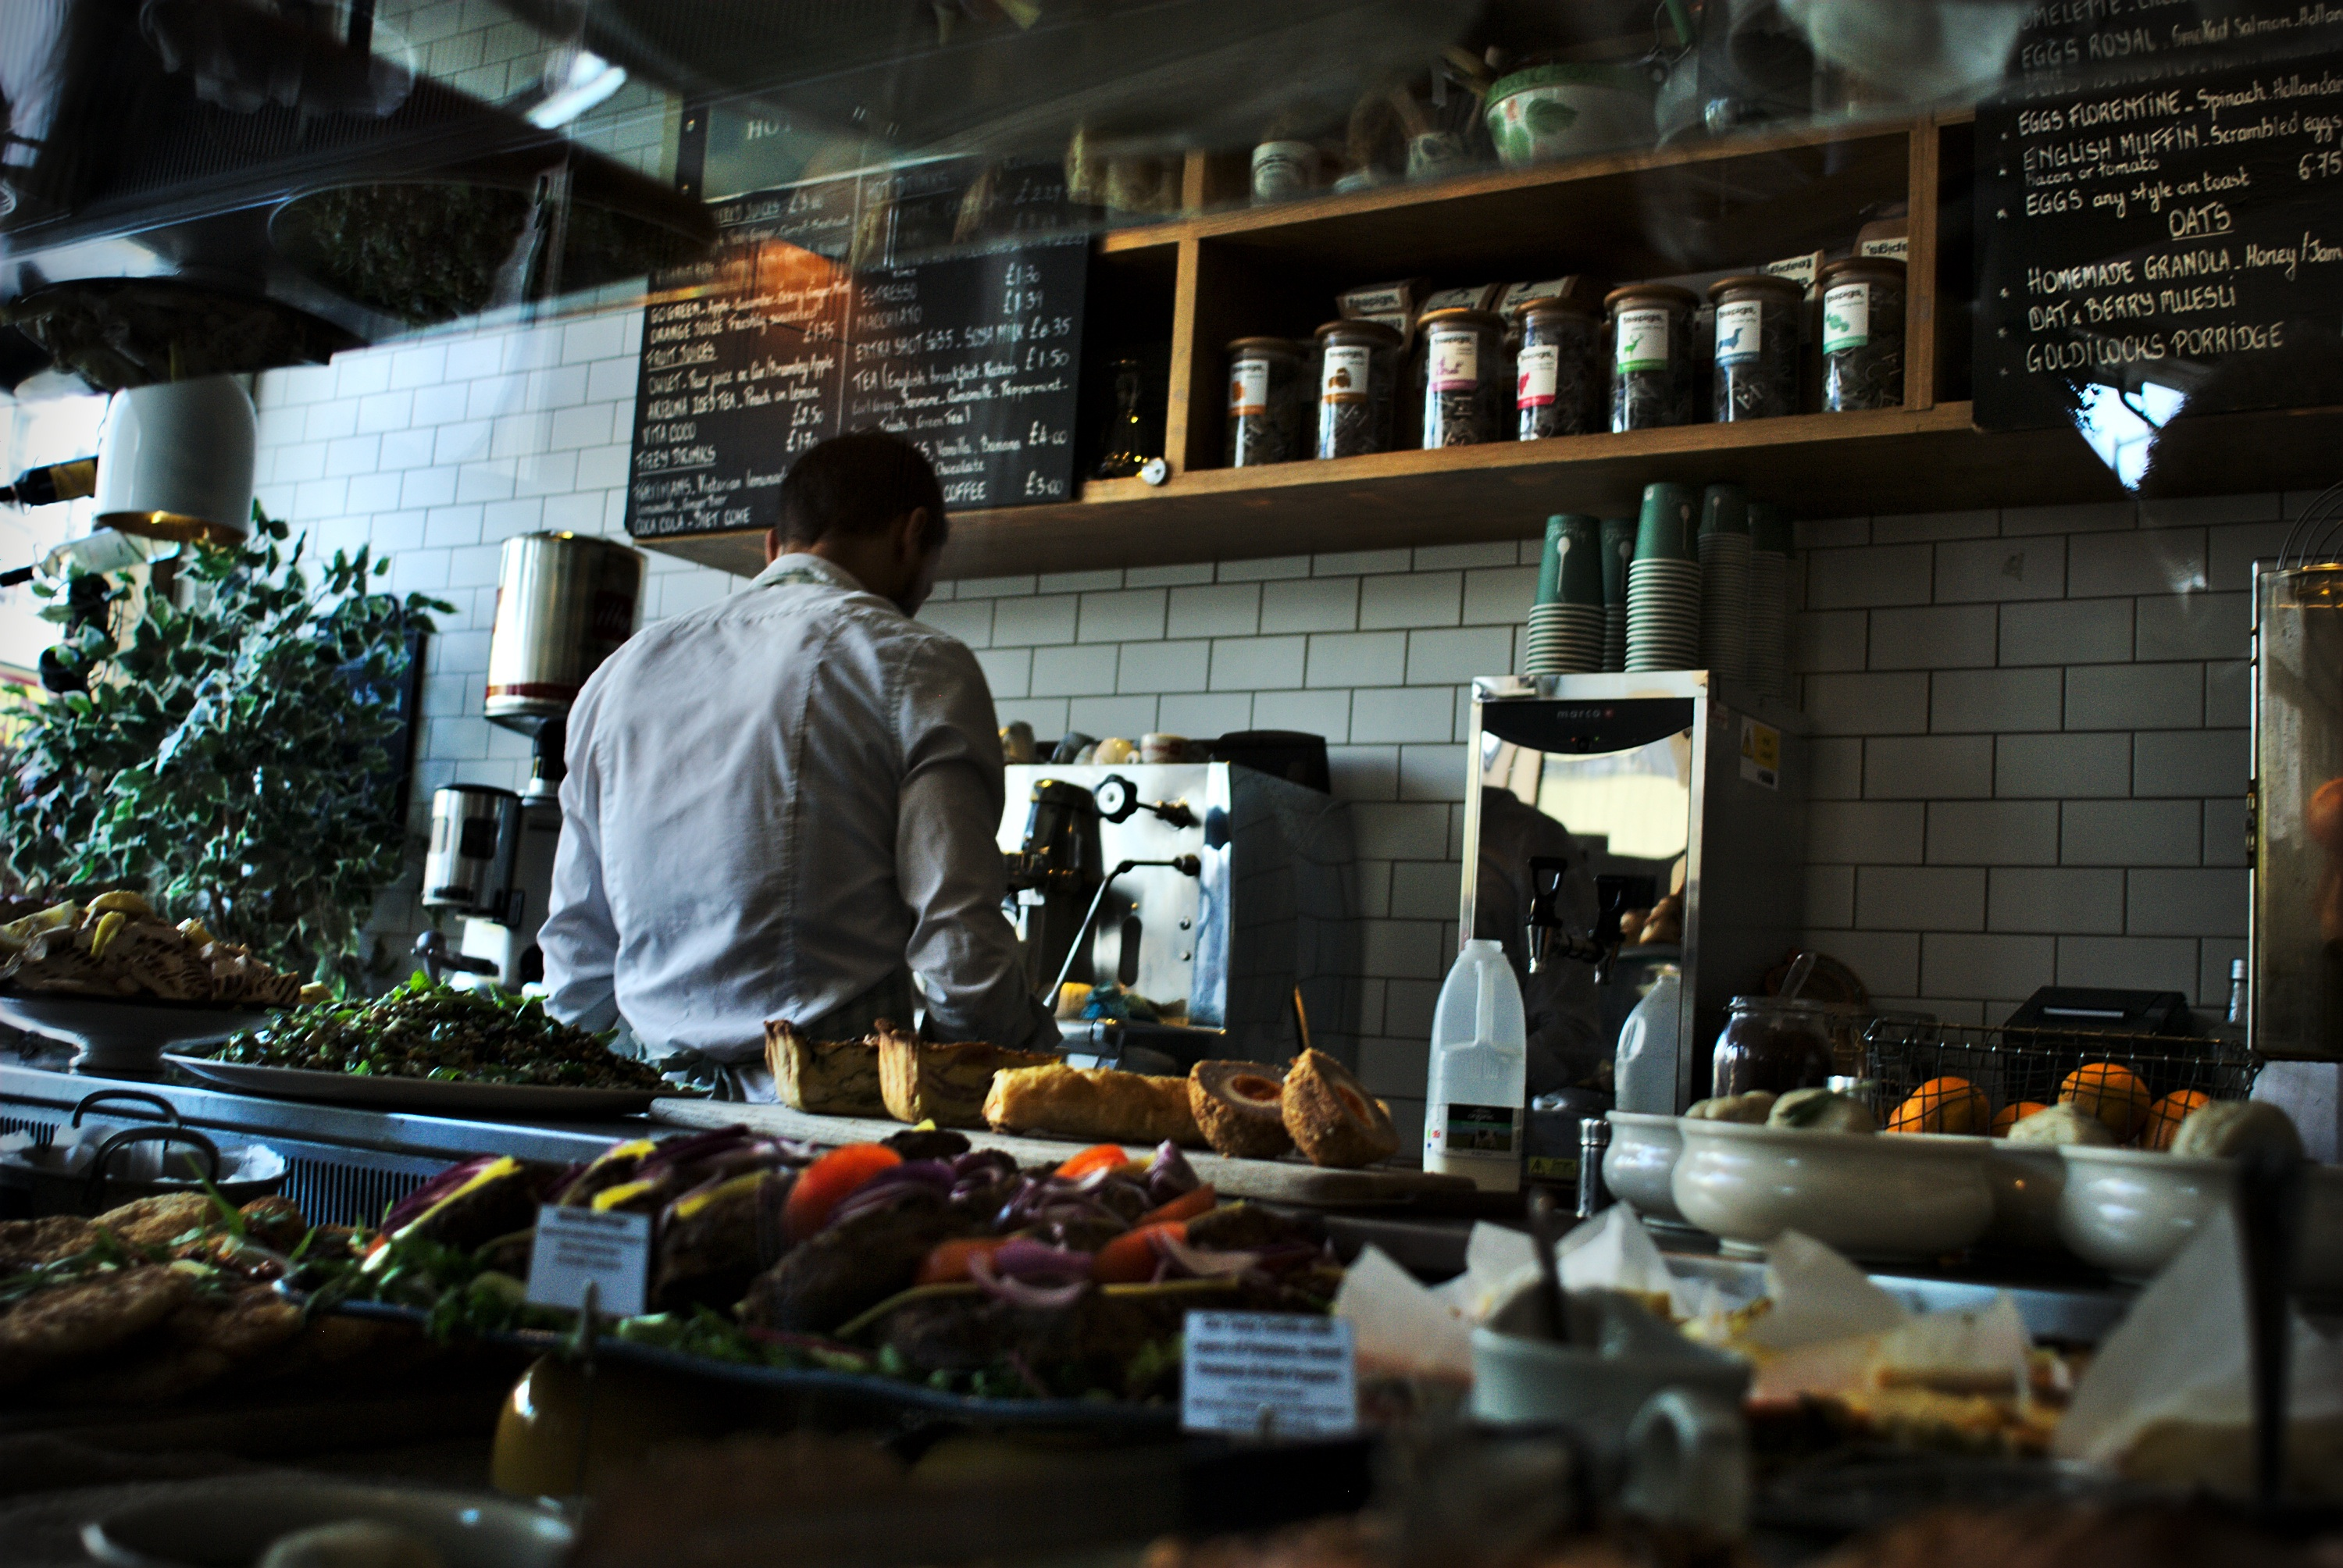 Want some food?, Cafe, Chef, Coffee, Cook, HQ Photo